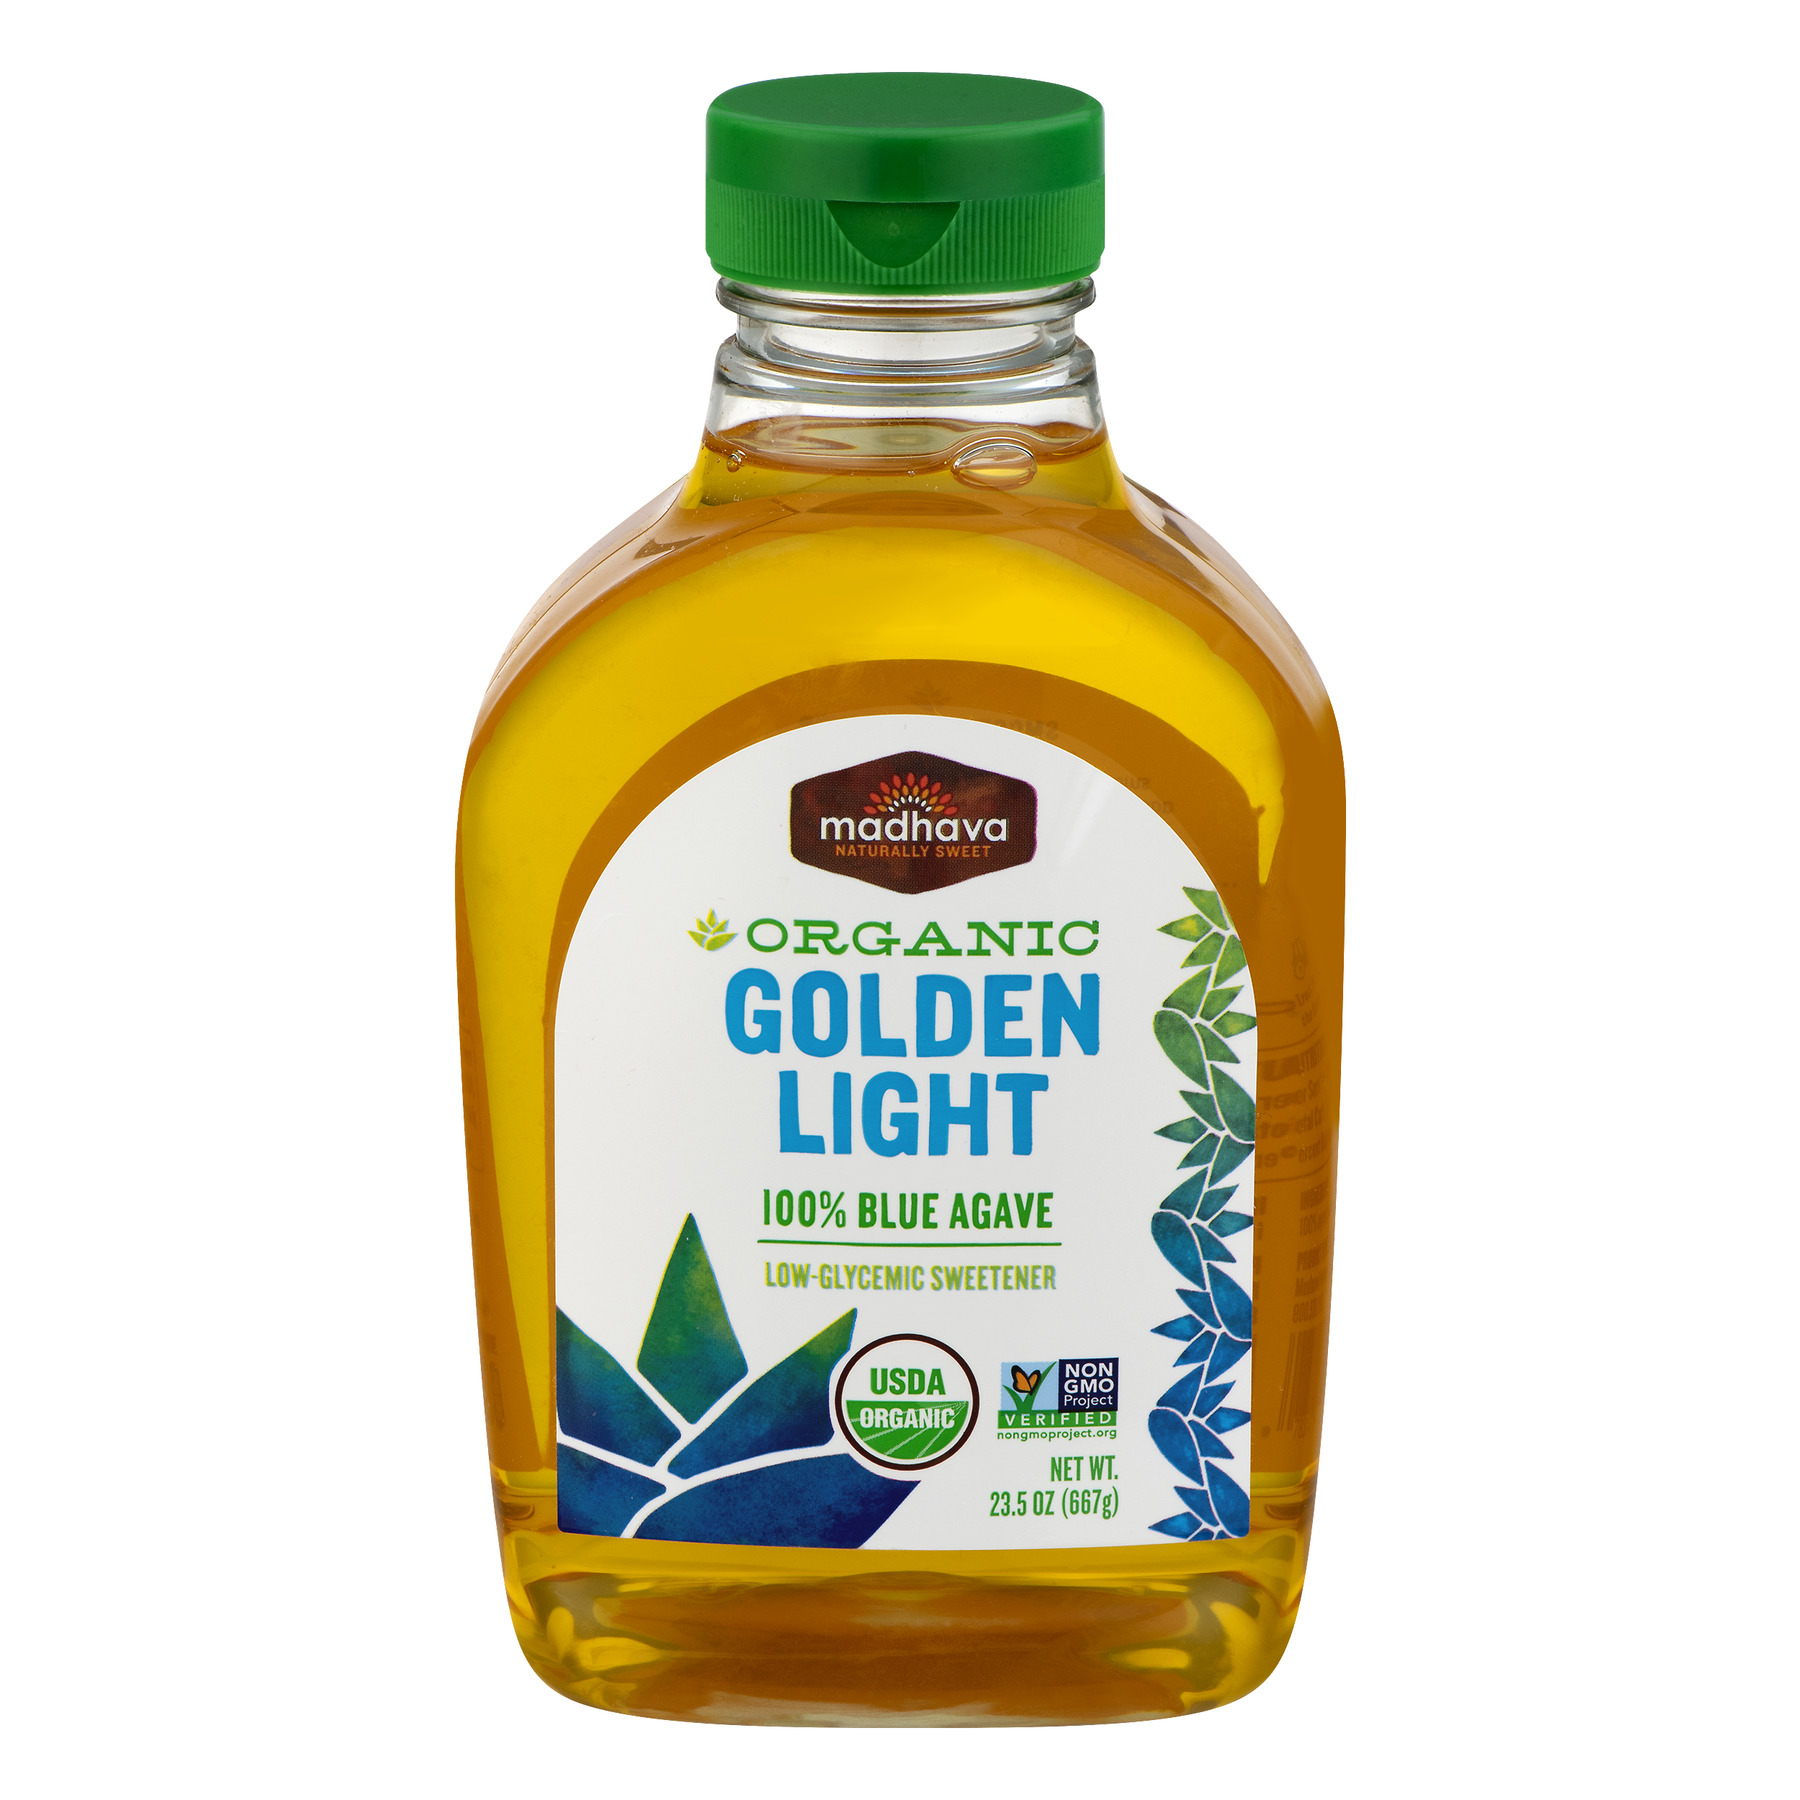 Madhava Organic Golden Light Blue Agave Sweetener, 23.5 OZ